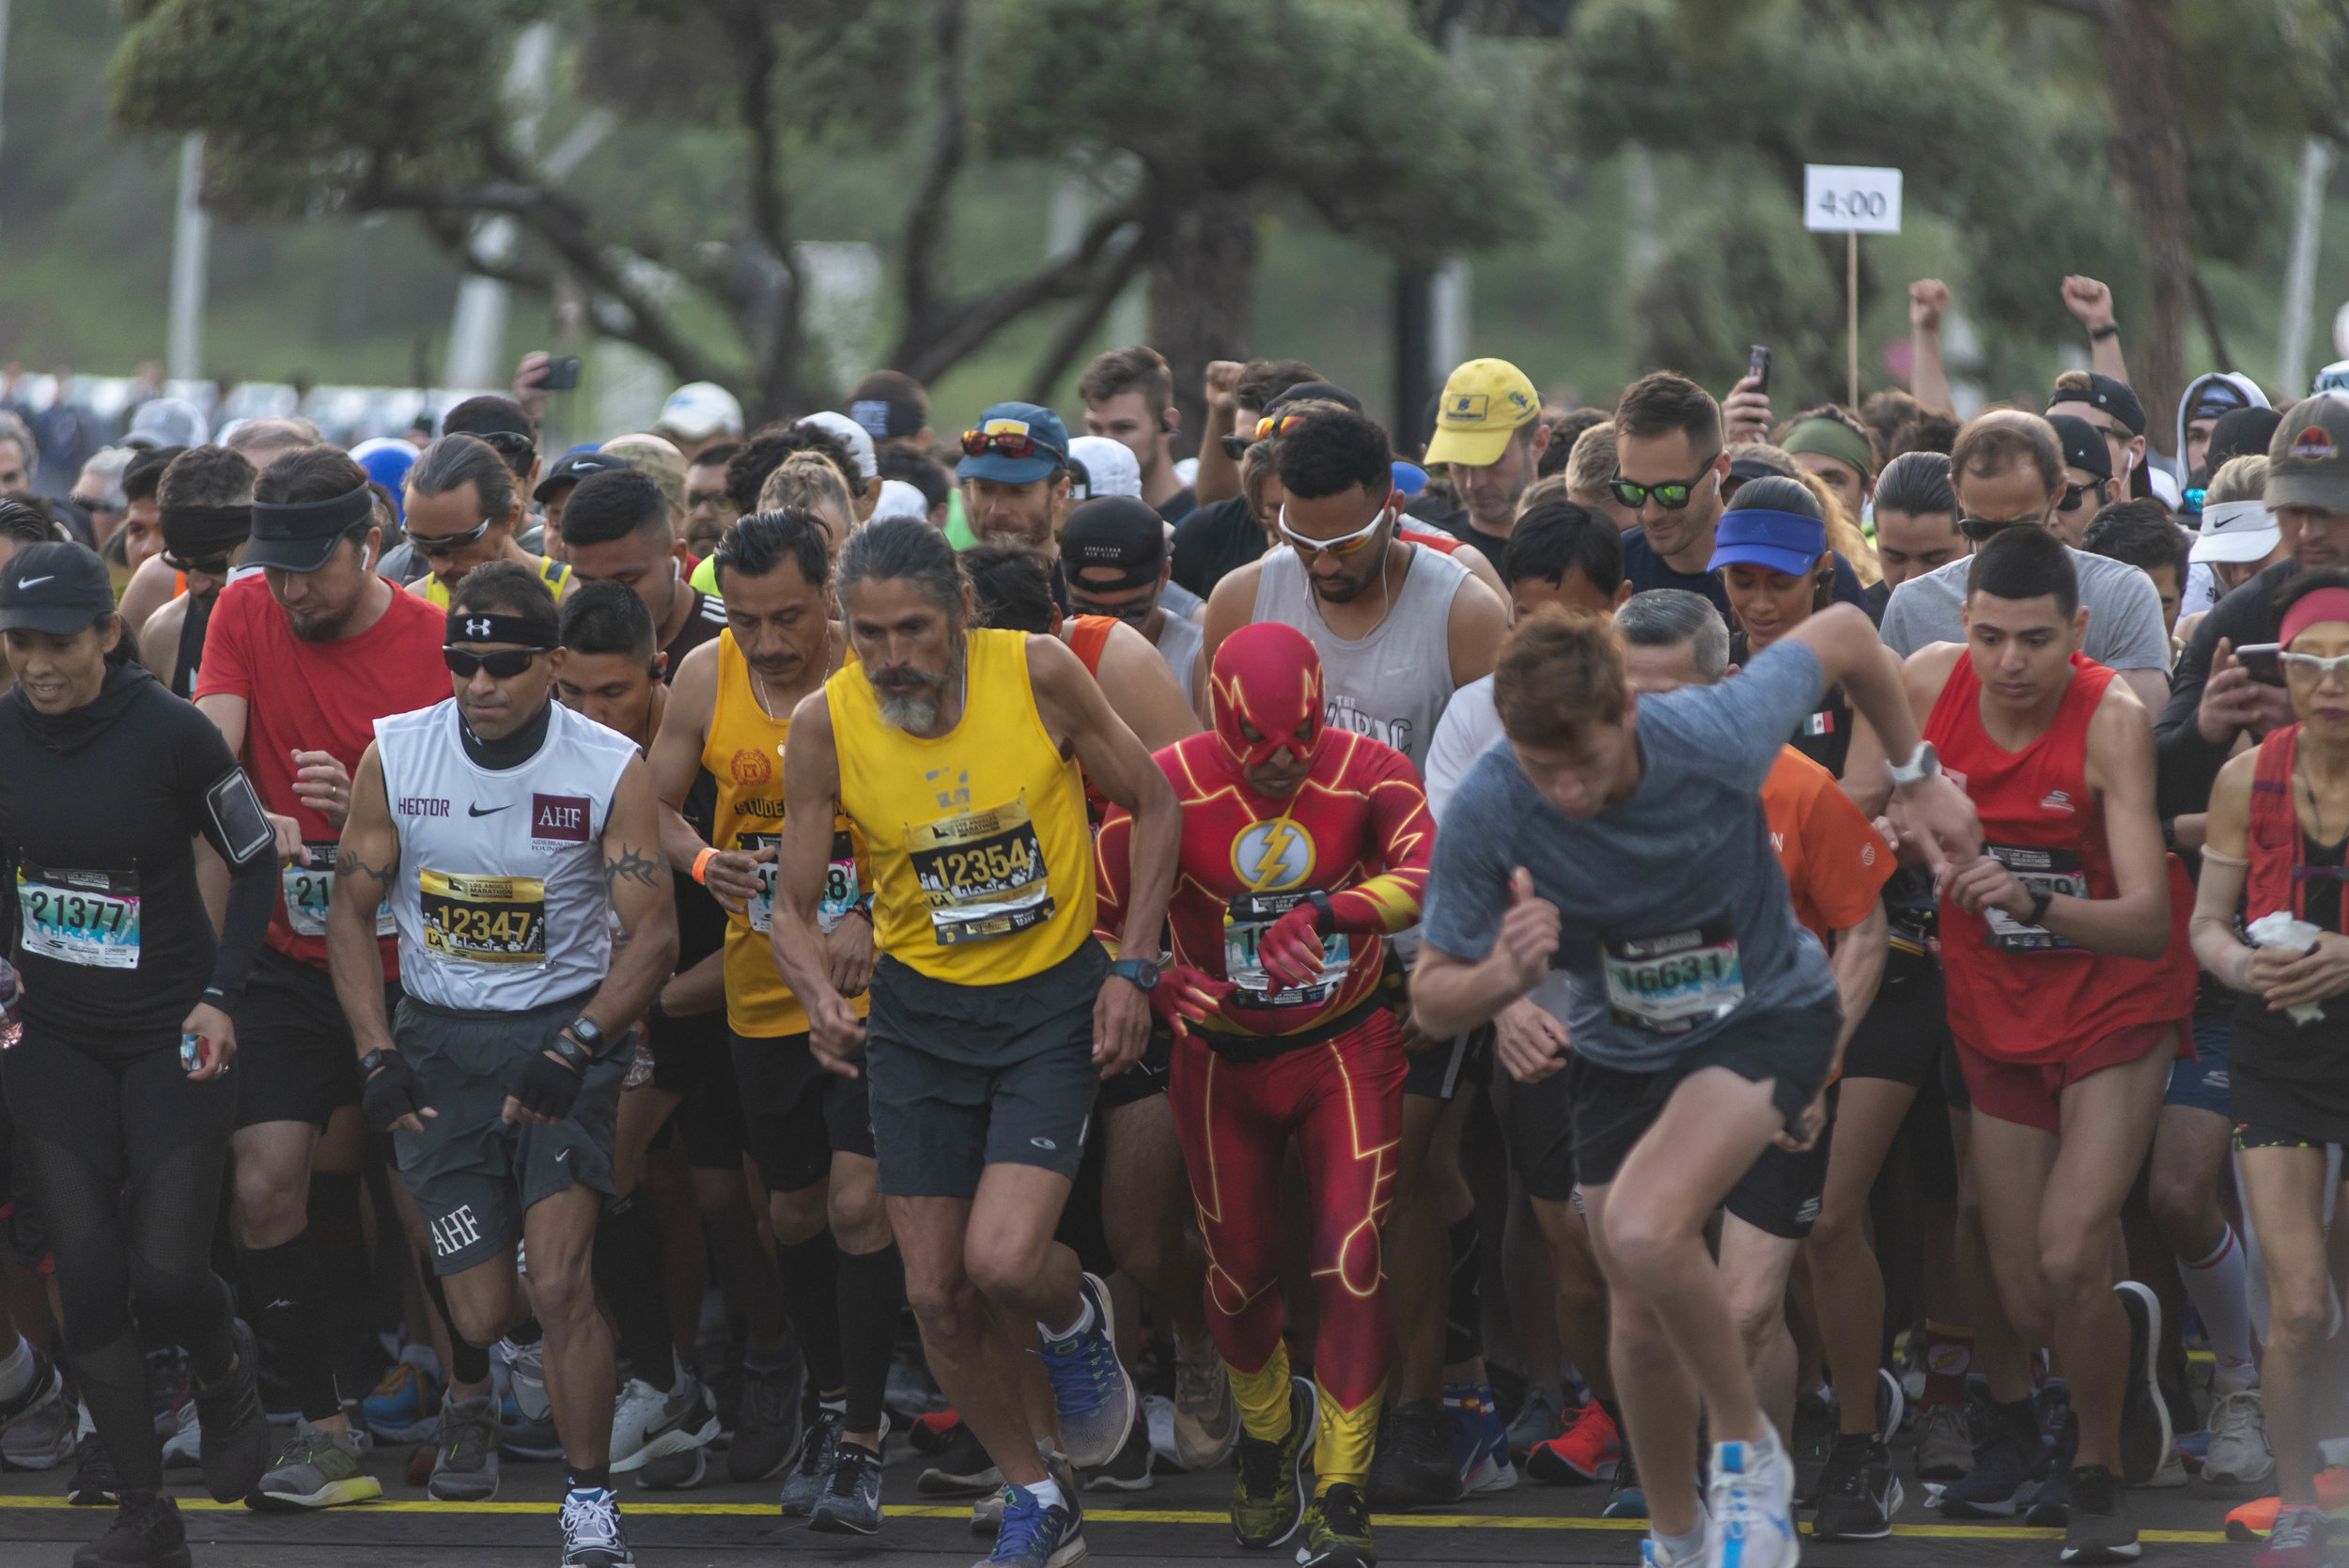 Los Angeles Marathon participants explode off the starting line at the 34th Los Angeles Marathon on Sunday, March 24, 2019, at Dodger Stadium in Los Angeles, Calif. (Photo by Andrew Narvaez)